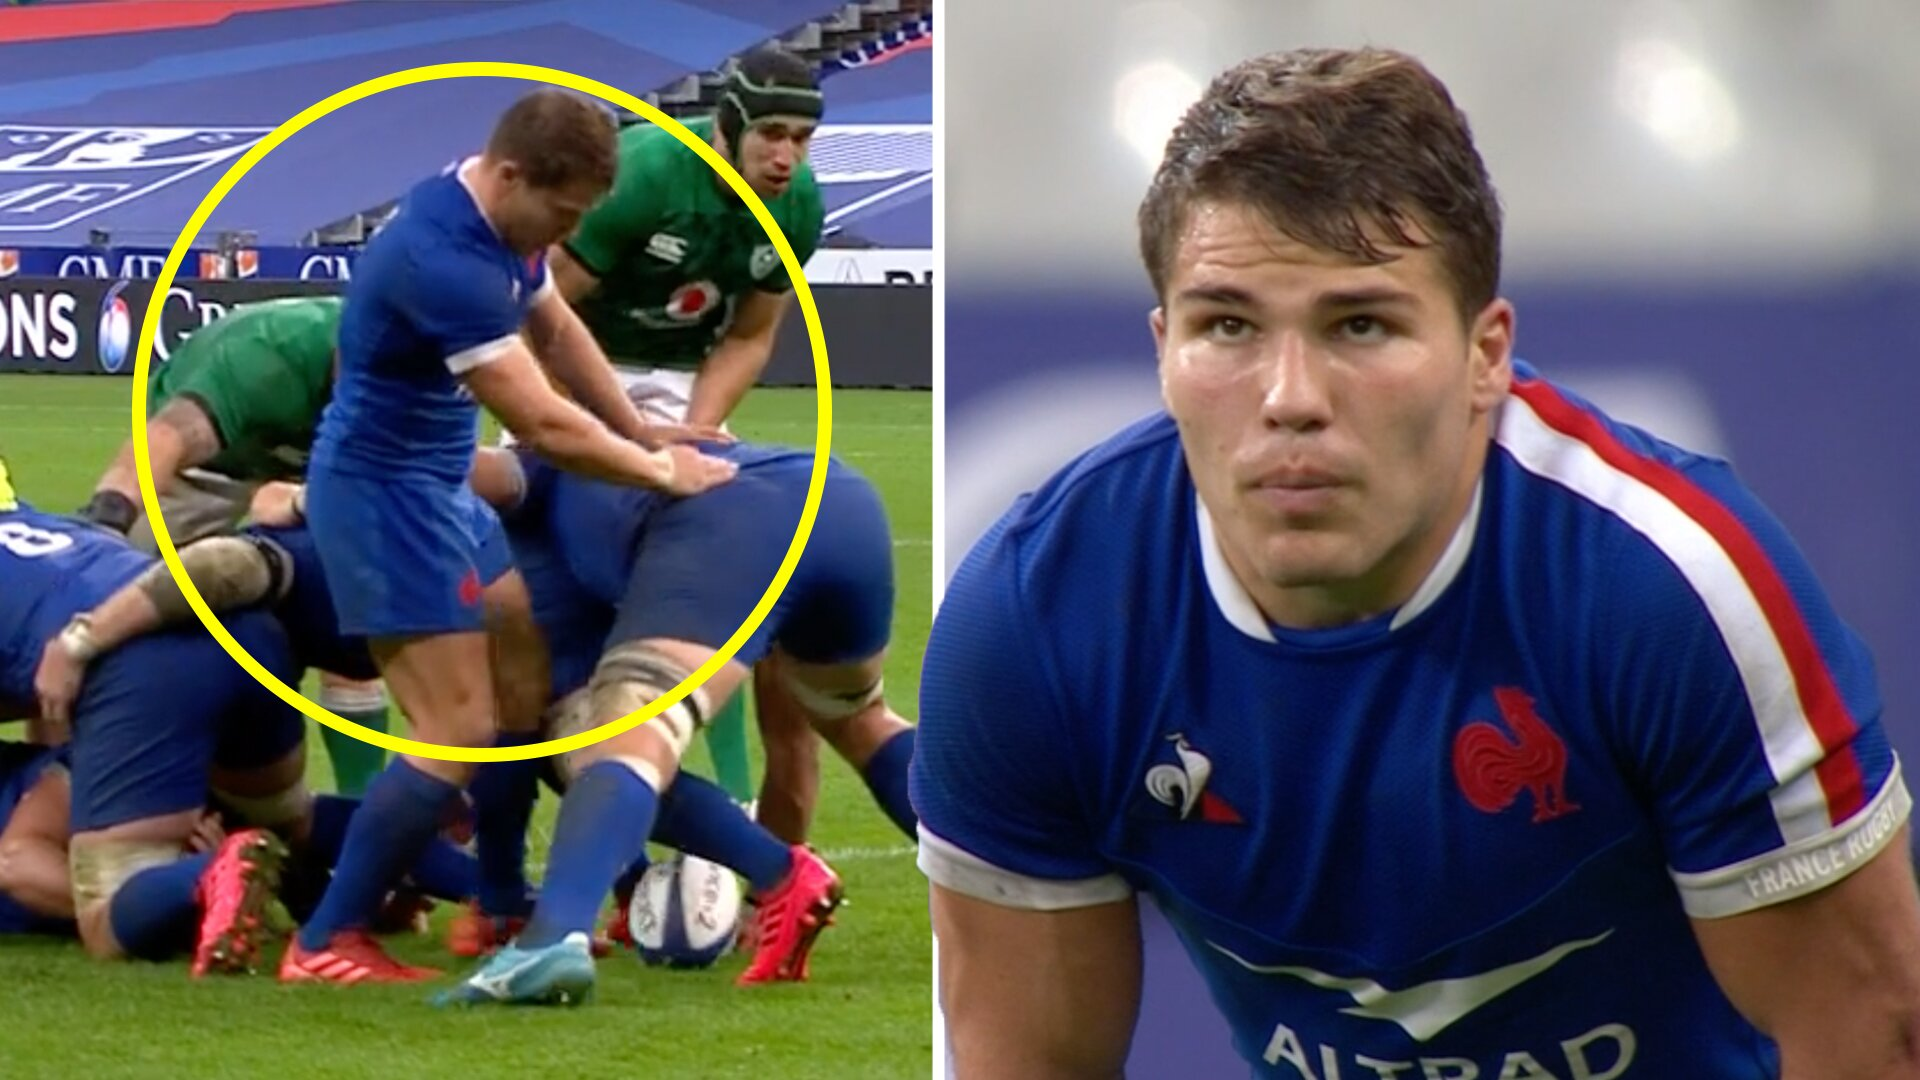 So why is everybody calling Antoine Dupont the best scrum half in the World